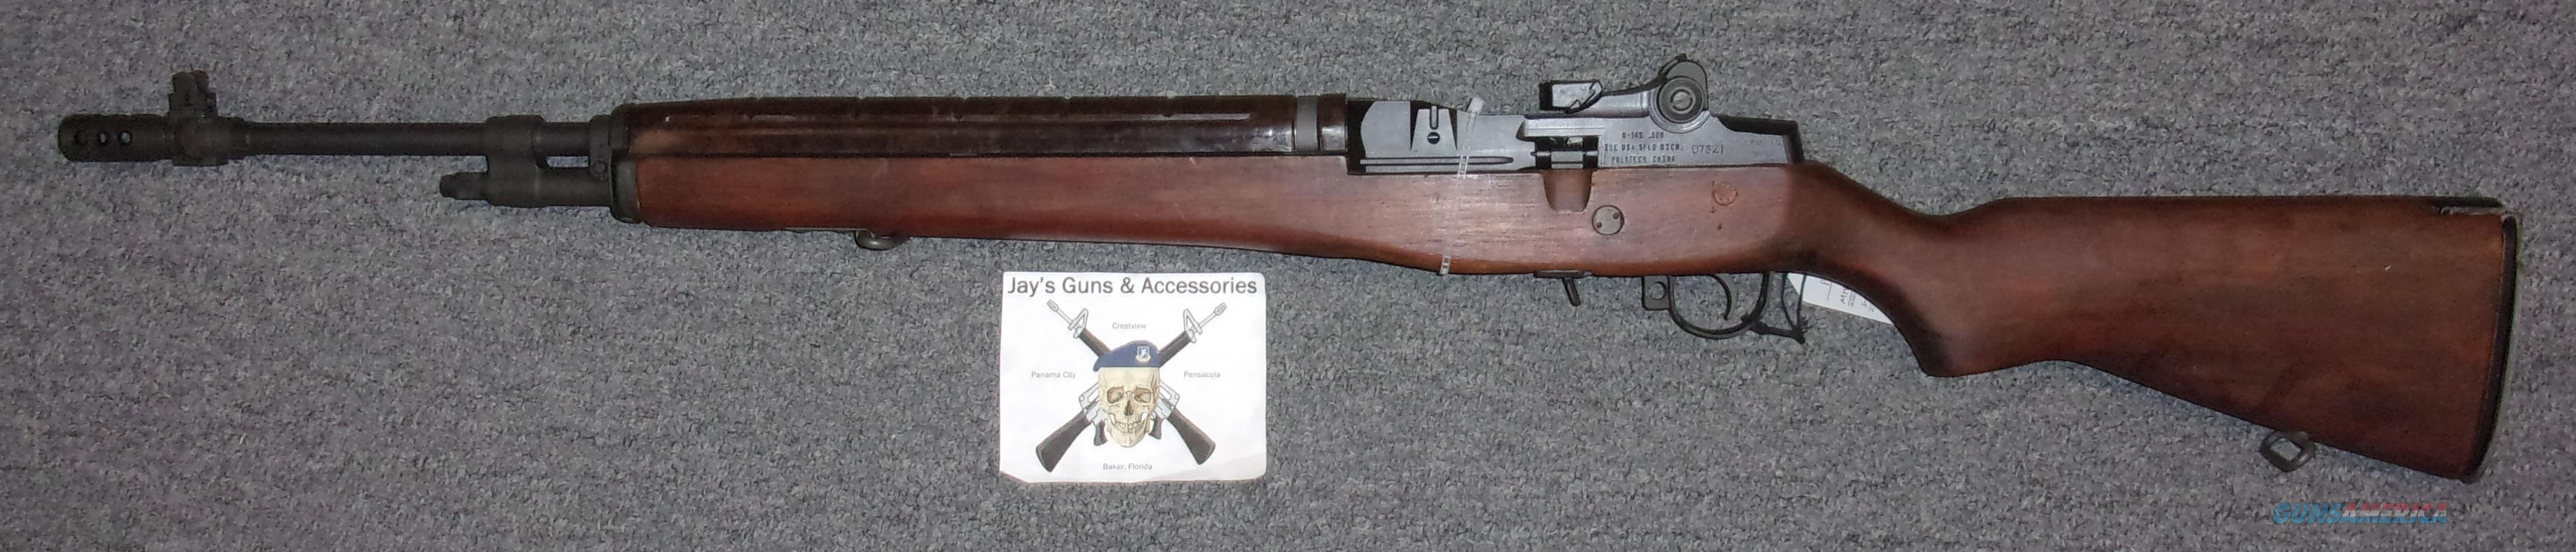 Polytech/IDE M14-S  Guns > Rifles > Military Misc. Rifles Non-US > Other